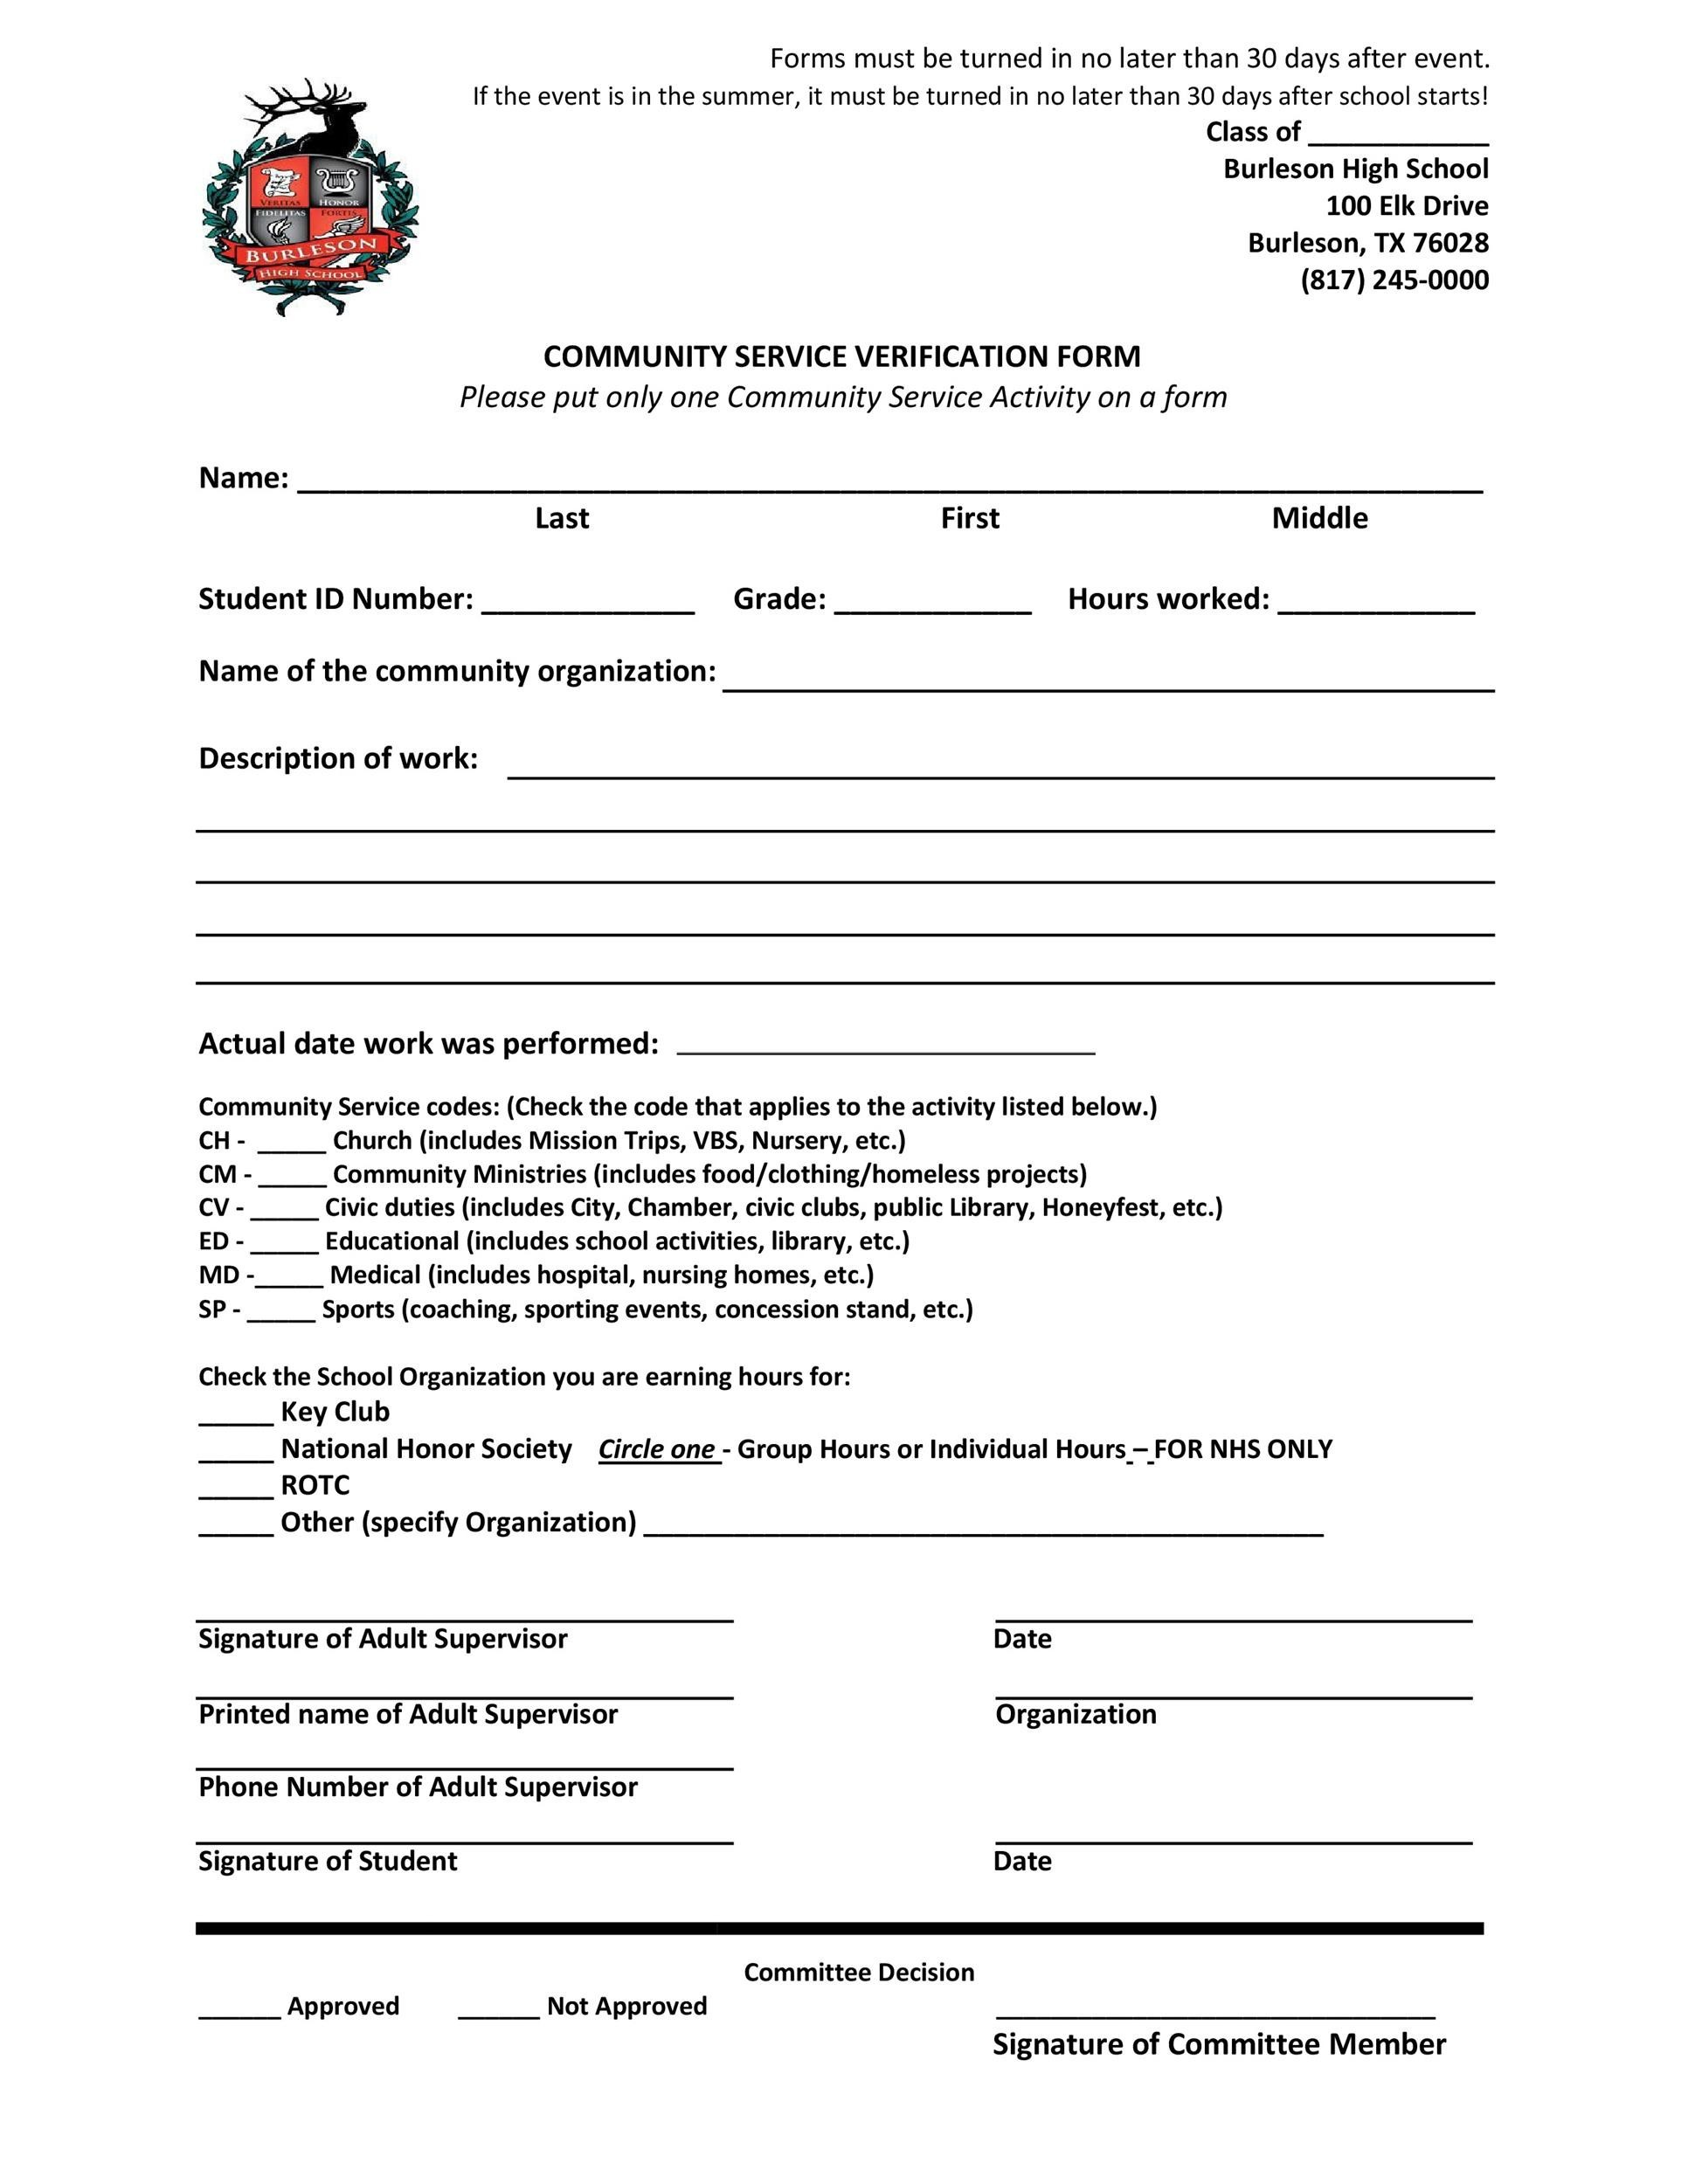 community-service-letter-template-20 Volunteer Hours Completion Letter Template on proof of volunteer hours template, volunteer request letter template, volunteer for community service letter, volunteer service hours letter, volunteer letters of the month, community service hours template, volunteer hours certificate templates, student volunteer hours template, volunteer letter for nurse, volunteer hours log, volunteer invitation letter, volunteer recommendation letter template, volunteer hours form template, volunteer verification letter template, volunteer hours record sheet template, volunteer completion letter,